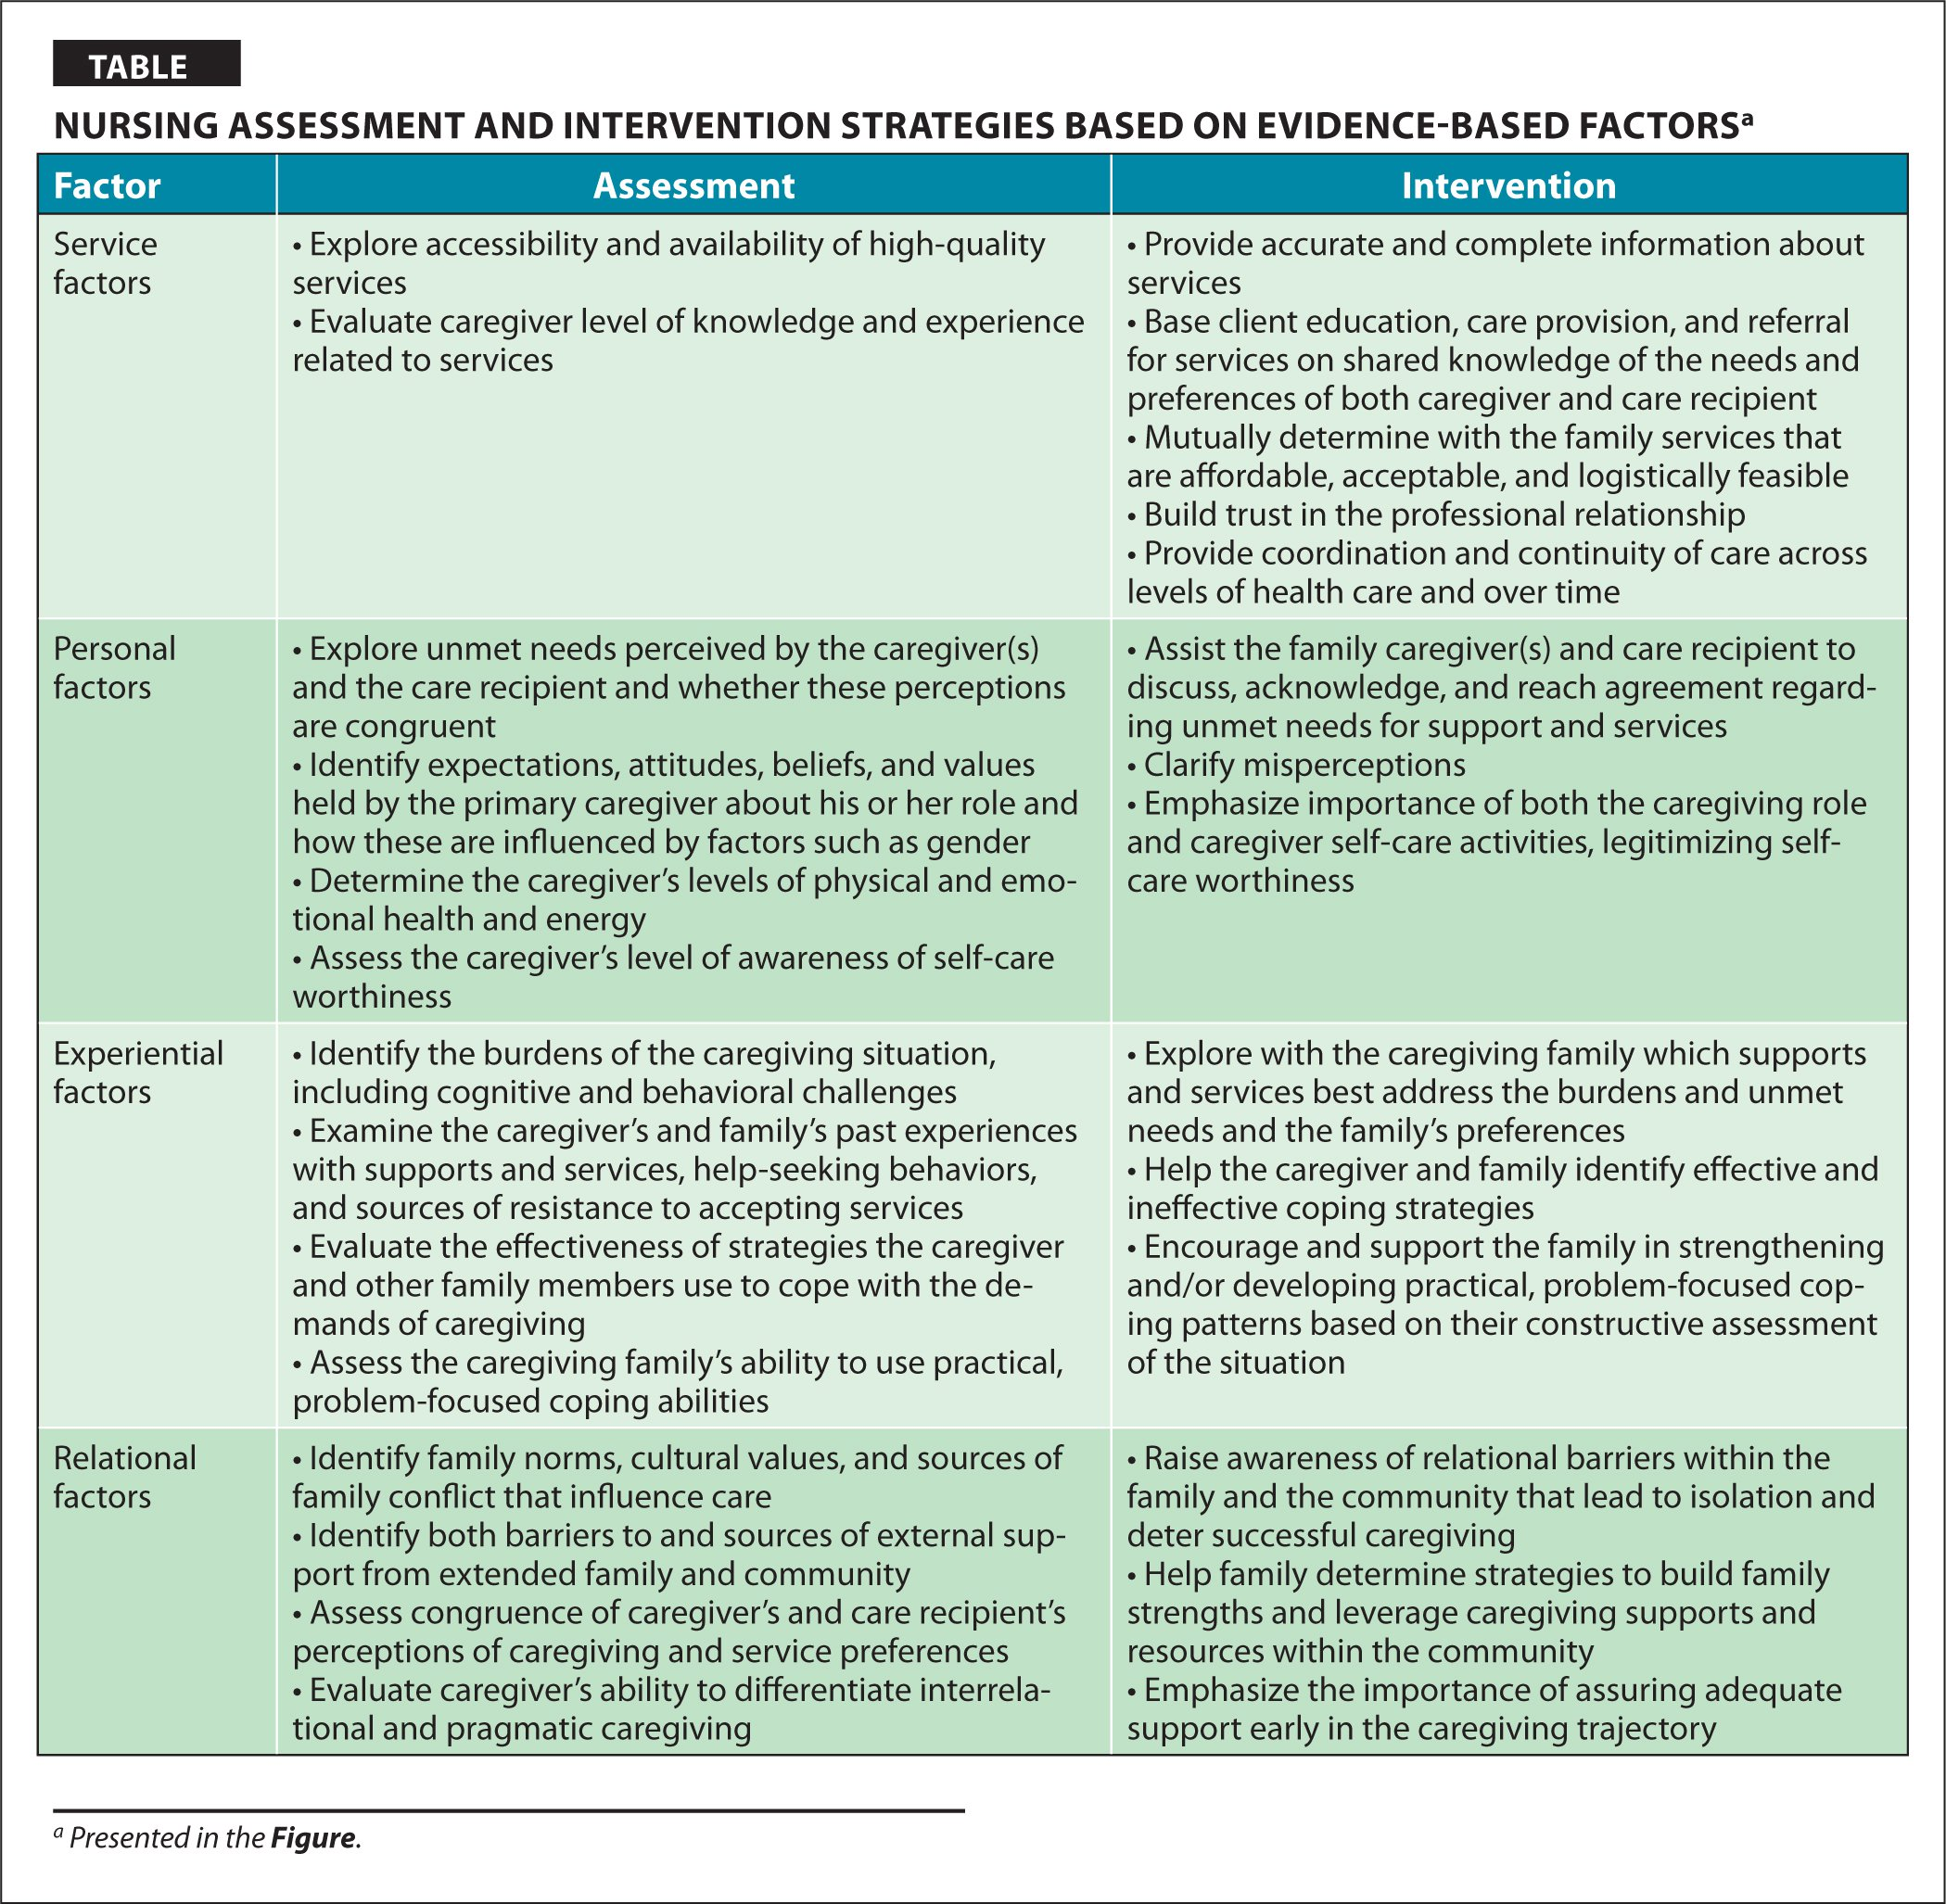 Nursing Assessment and Intervention Strategies Based On Evidence-Based Factorsa